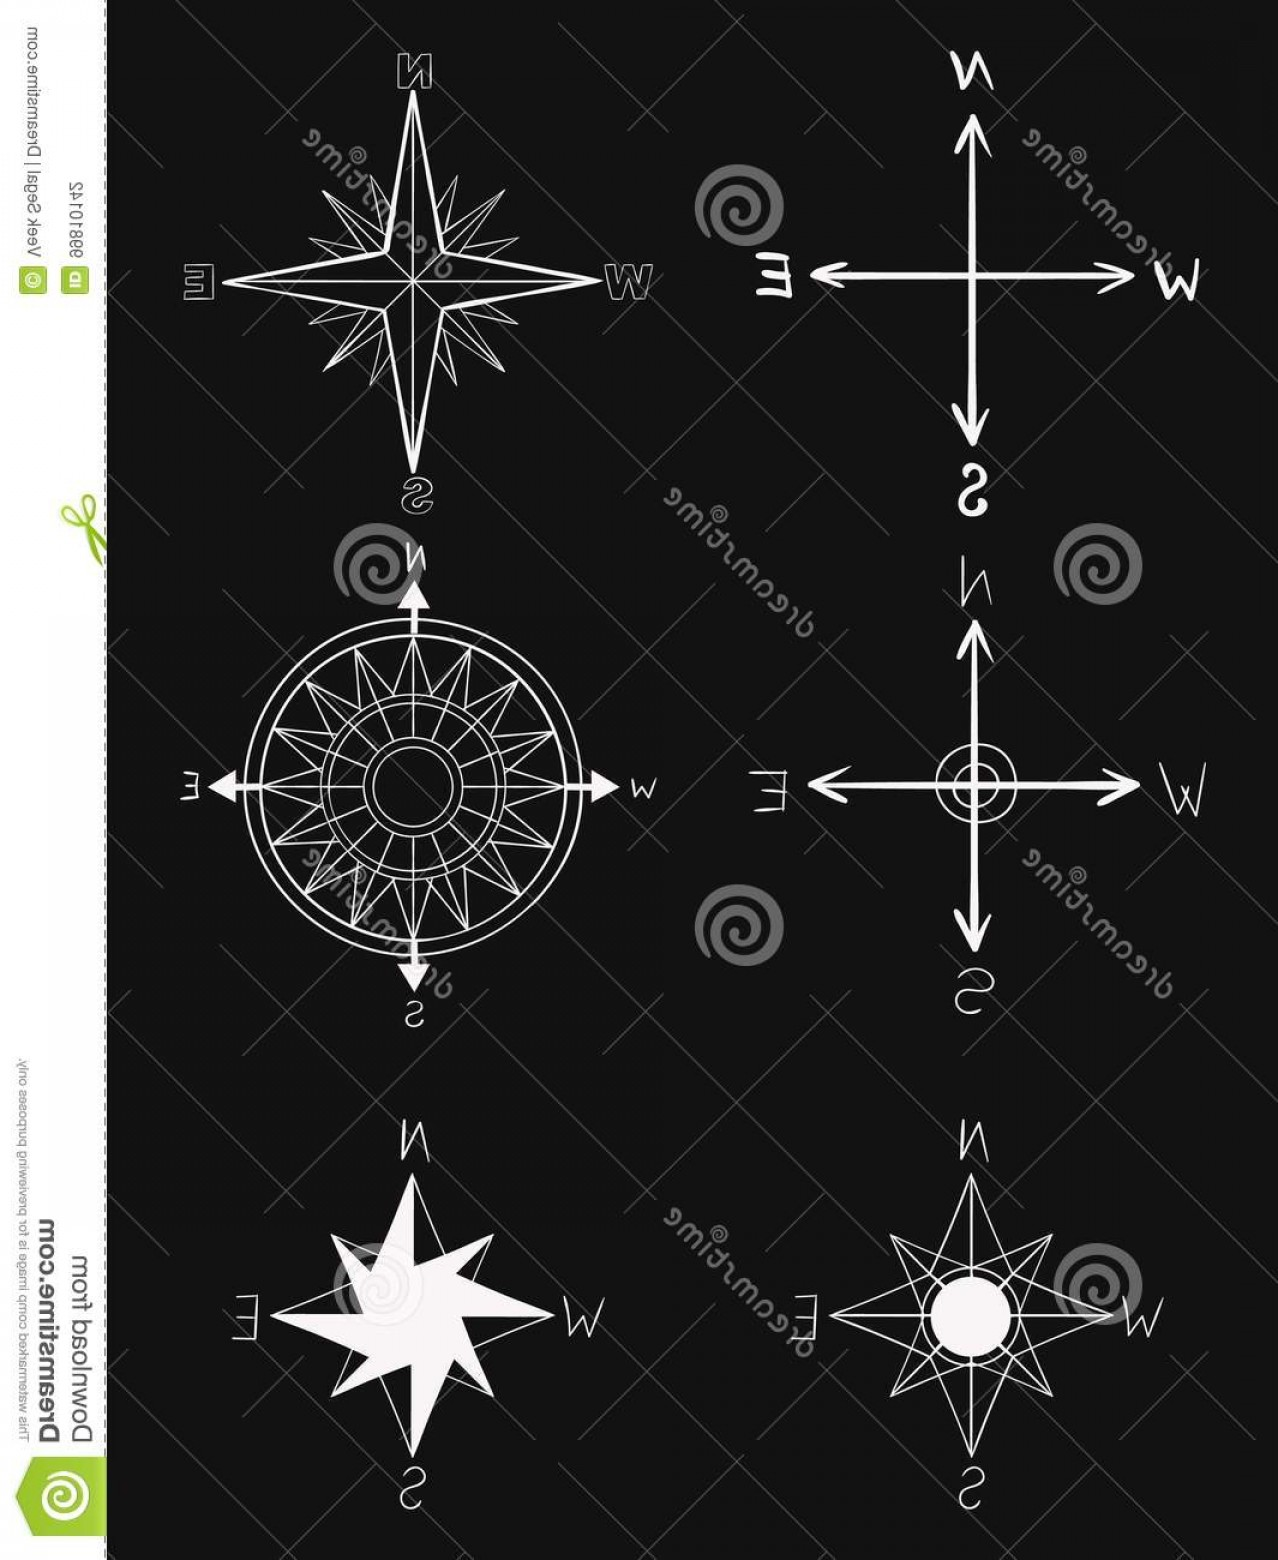 Measurement And Direction Vector: Hand Drawn Vector Elements Vintage Wind Rose Symbols Old Fashioned Nautical Patterns White Option Hand Drawn Vector Elements Image